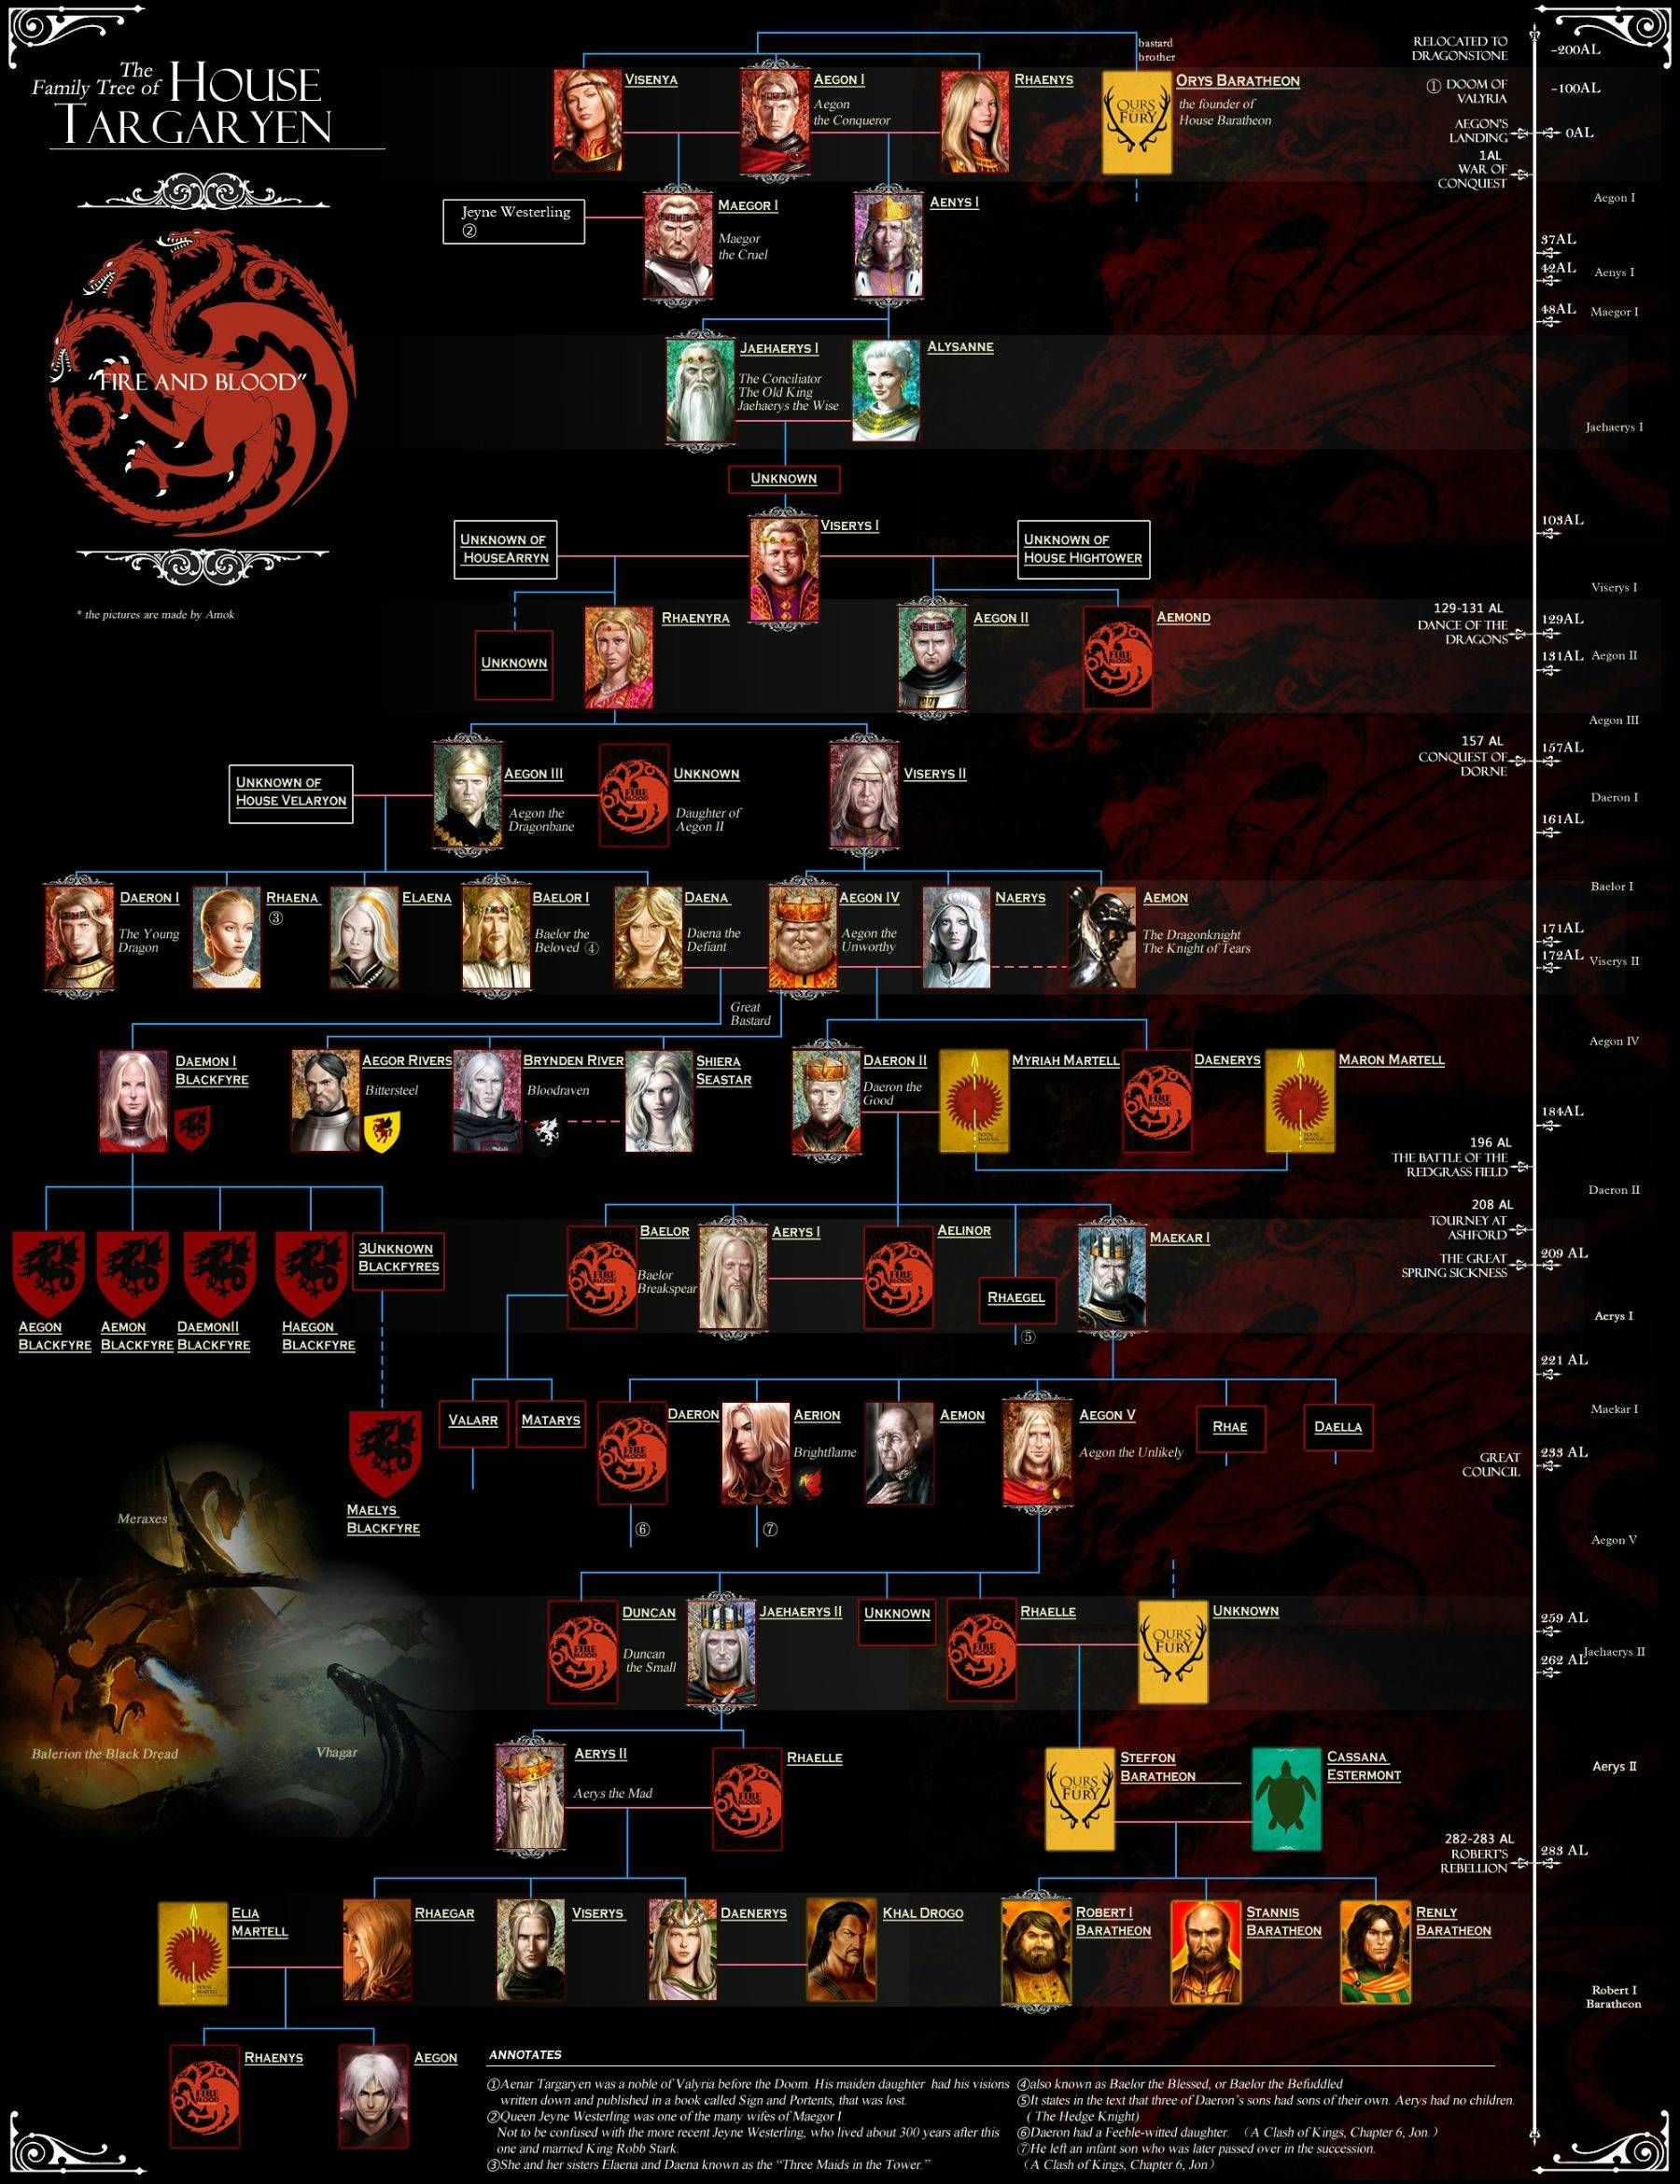 Game Of Thrones Lineage Chart : thrones, lineage, chart, Targaryen, Family, Tree,, Thrones, Houses